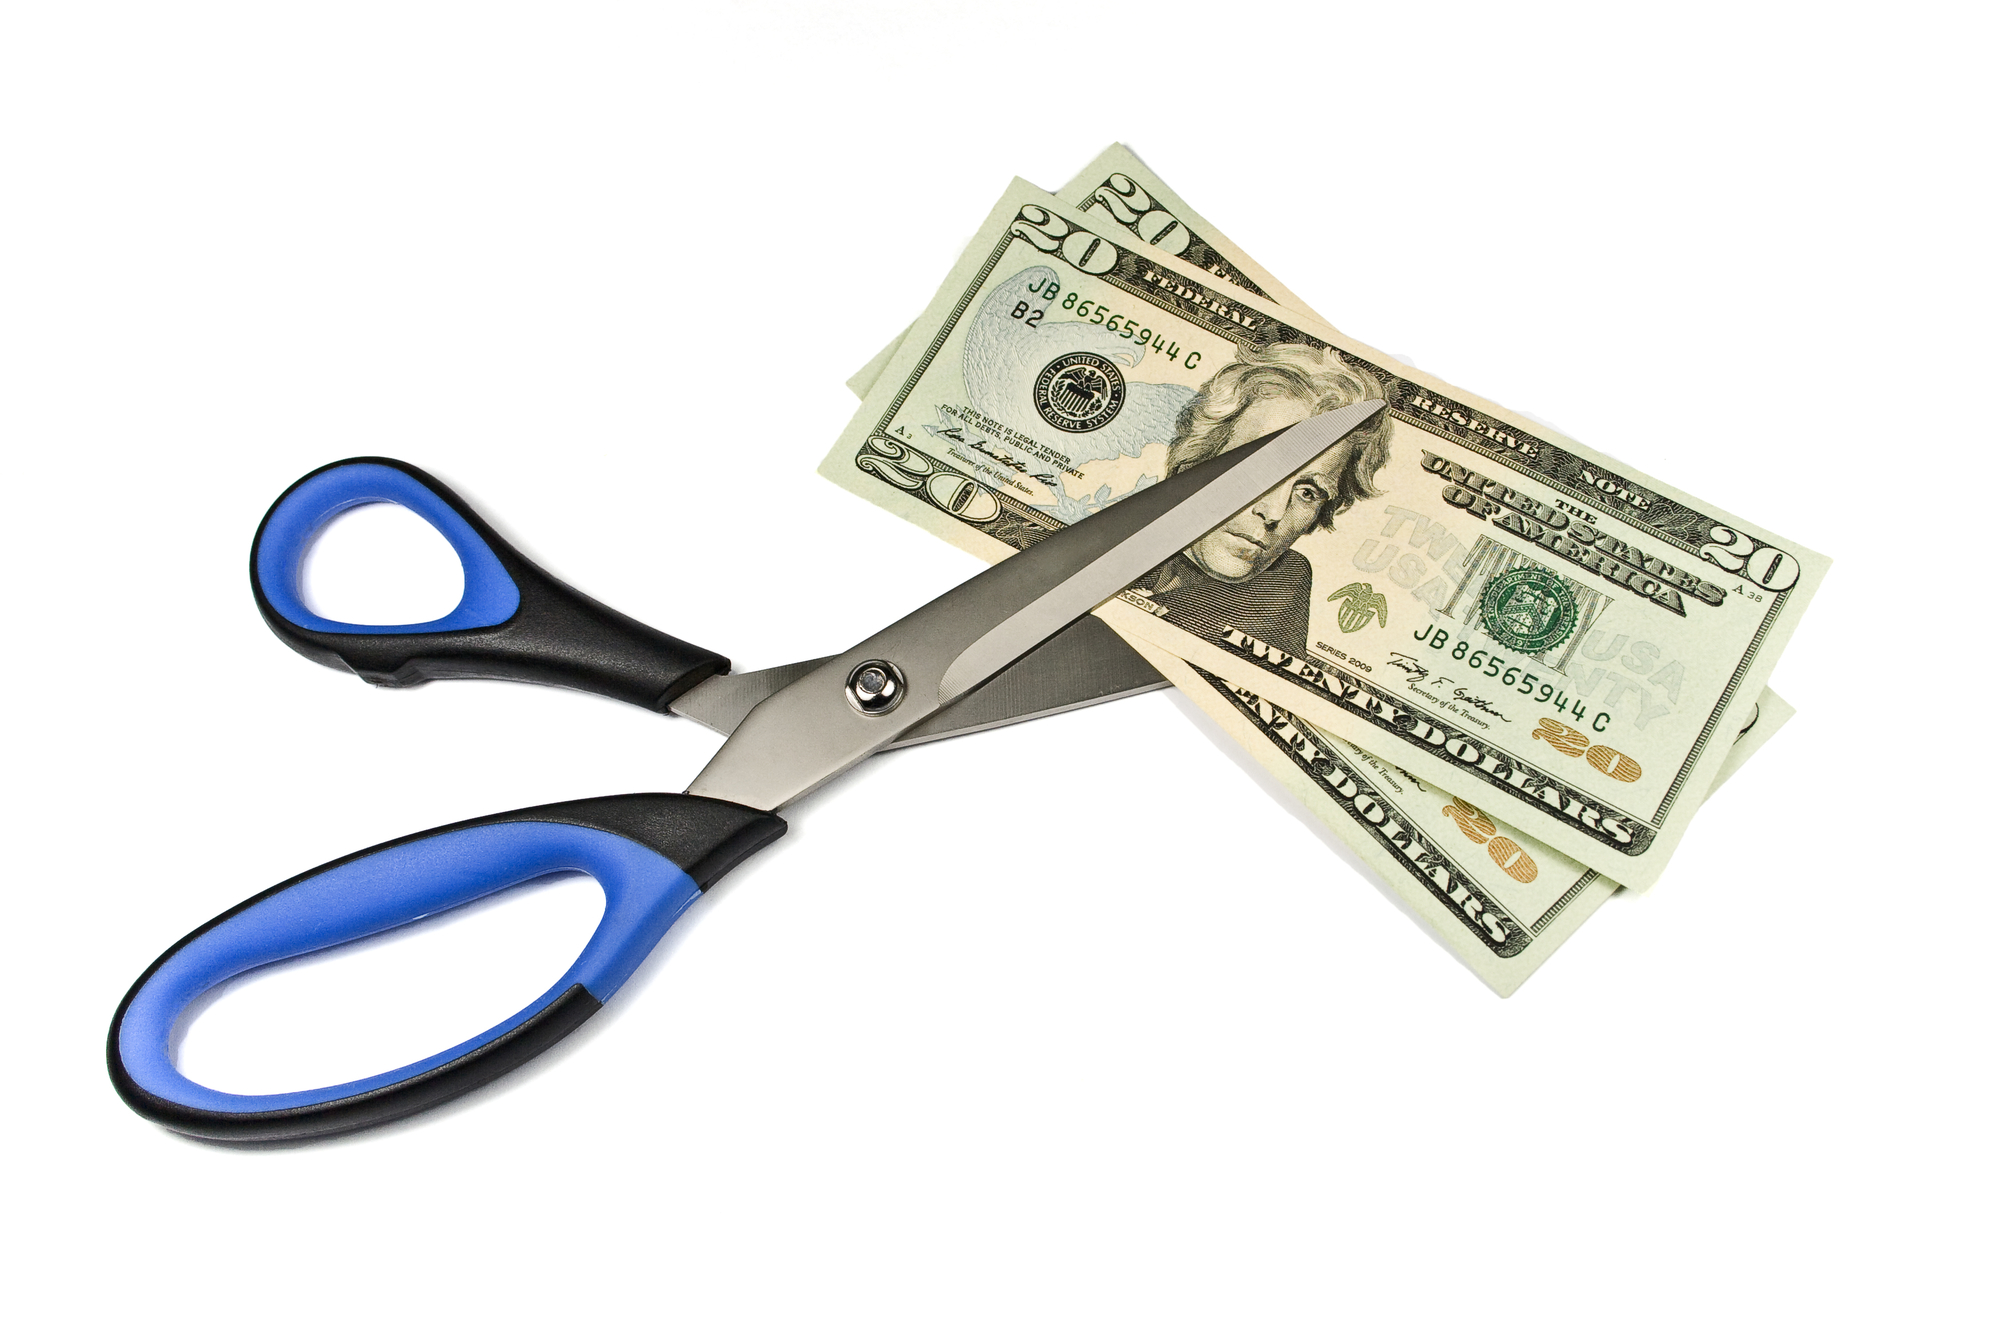 Scissors cutting retail property manager salaries in half